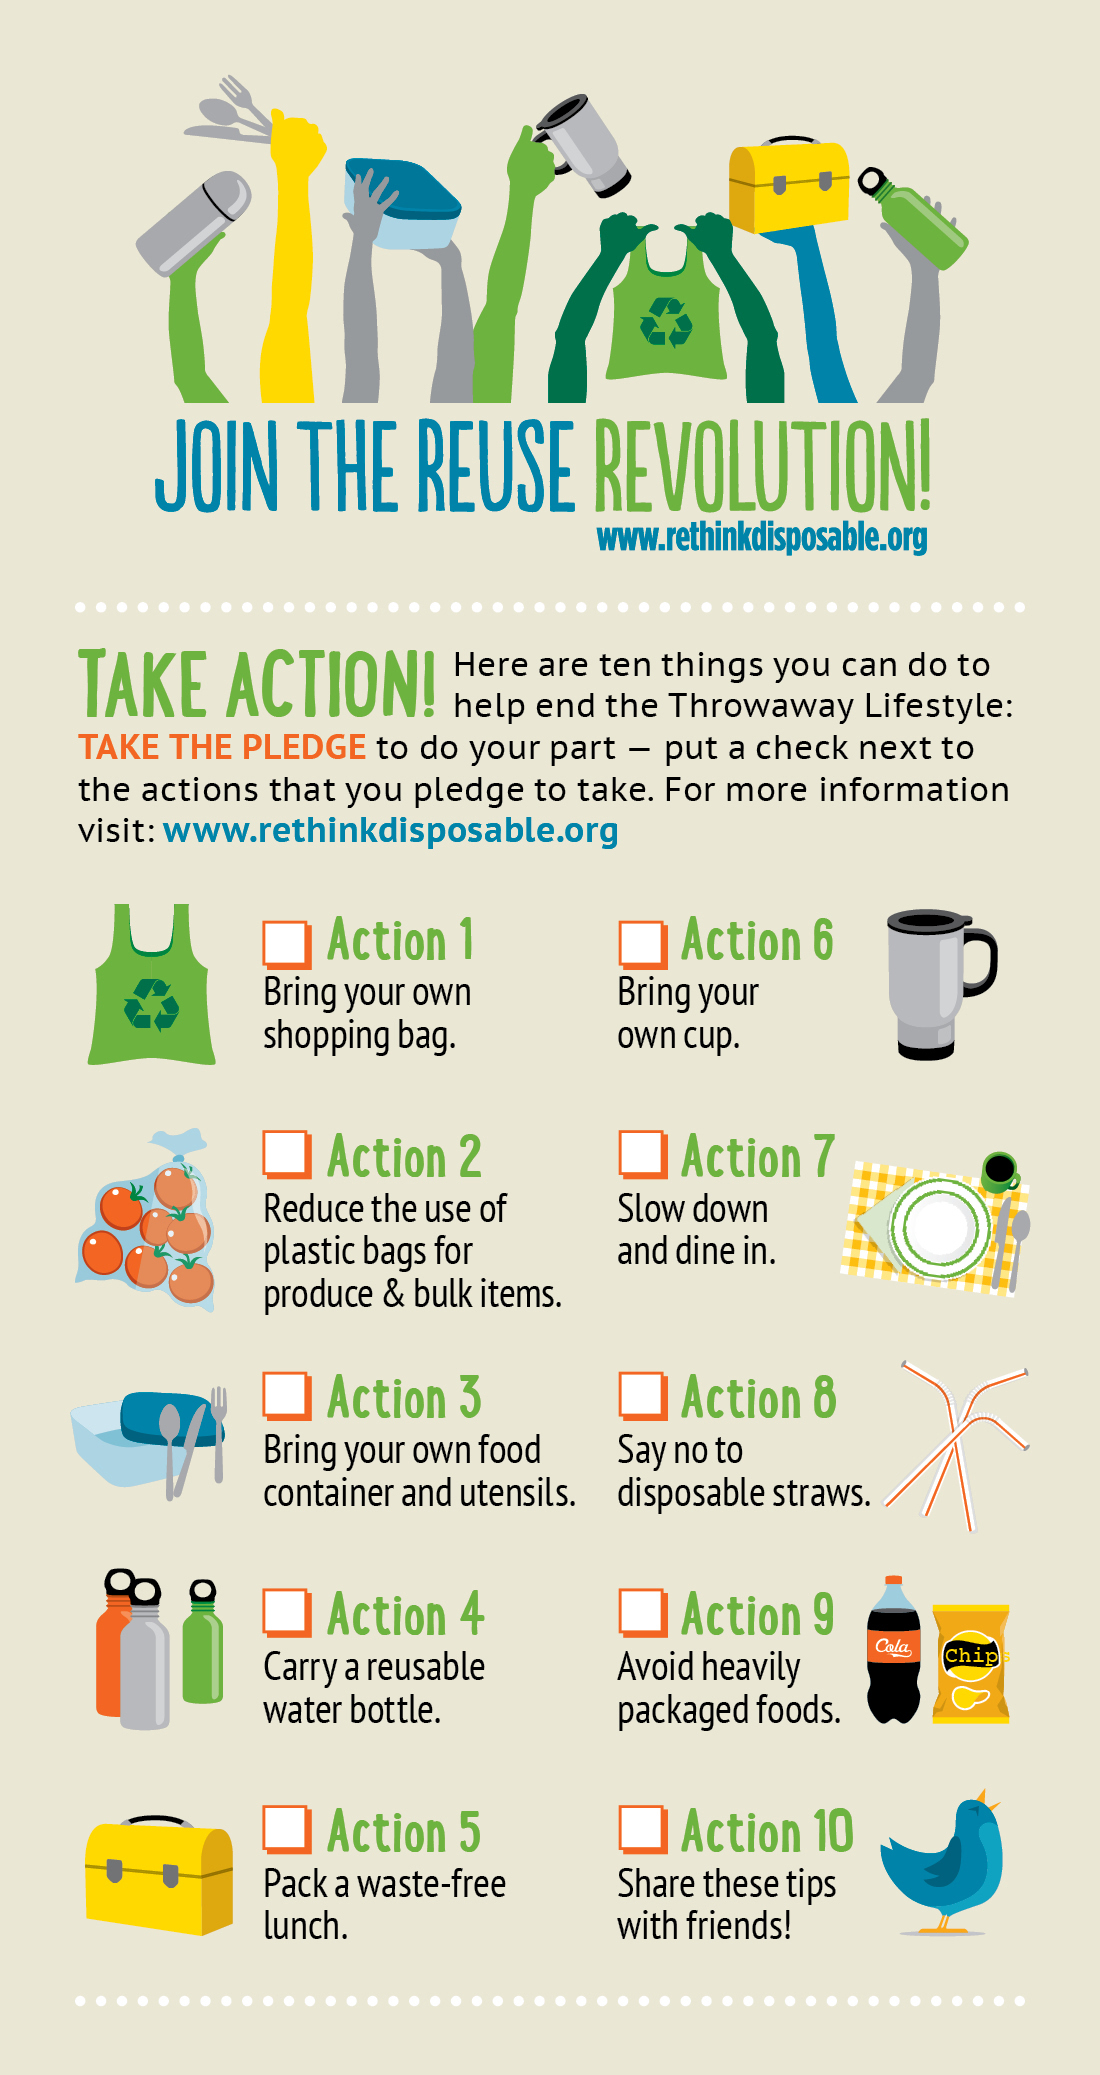 Join the Reuse Revolution - Ten Things You Can Do Graphic. Credit: ESDesign / Clean Water Action